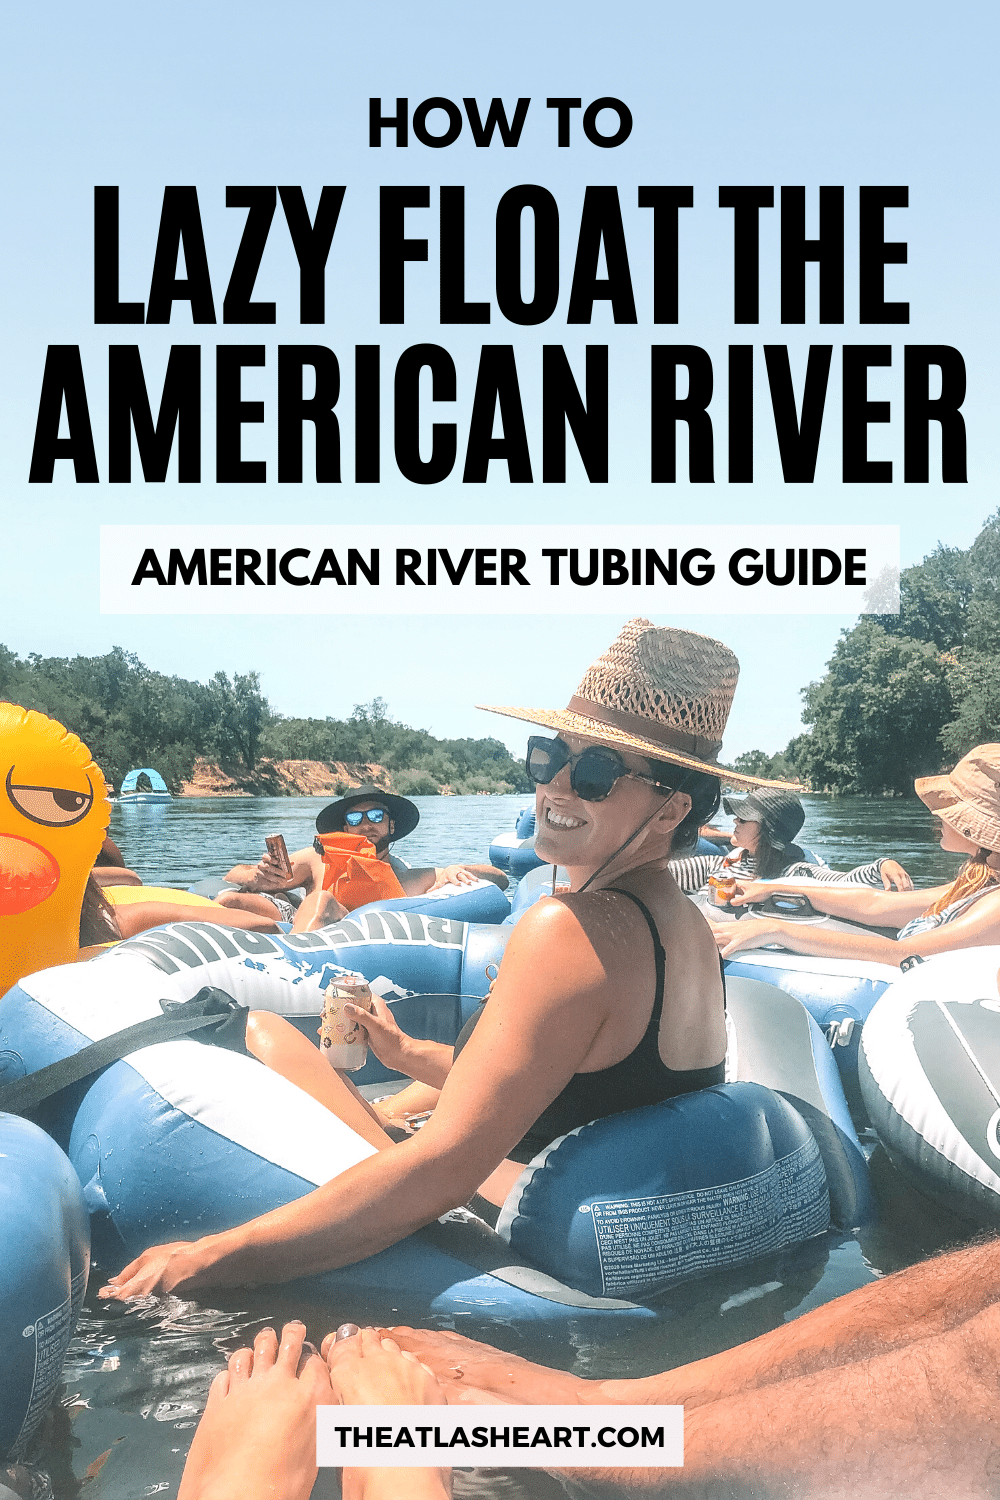 How to Lazy Float the American River (American River Tubing Guide)